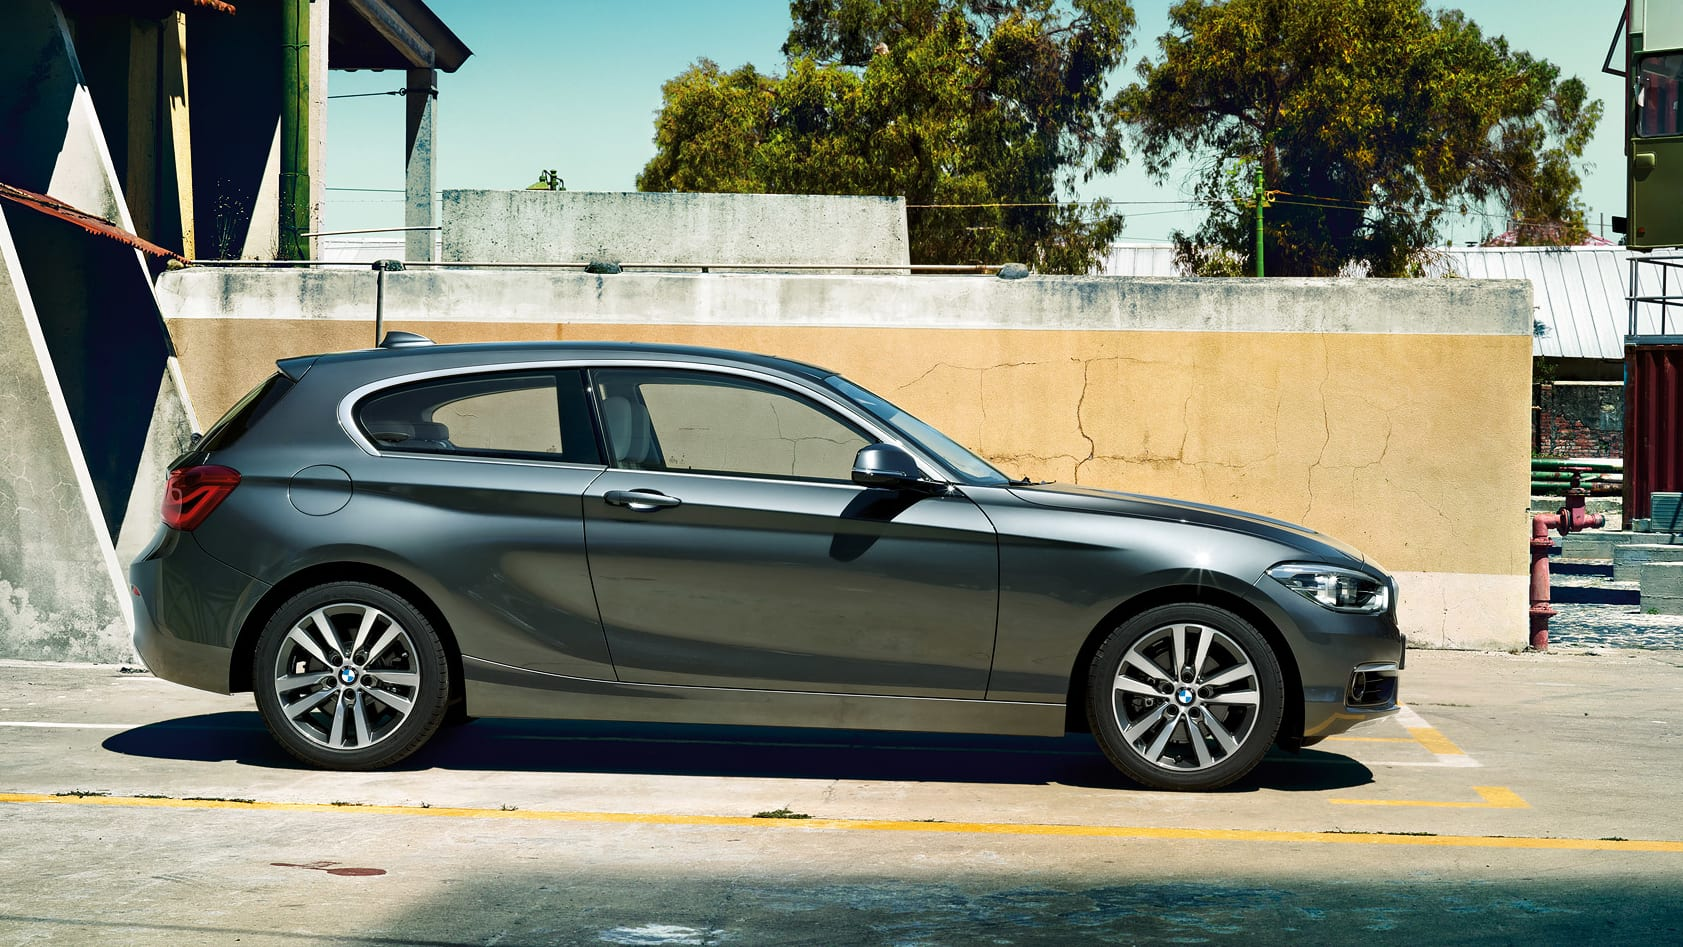 Bmw Used Approved Cars Barretts Bmw Kent Formerly Broad Oak